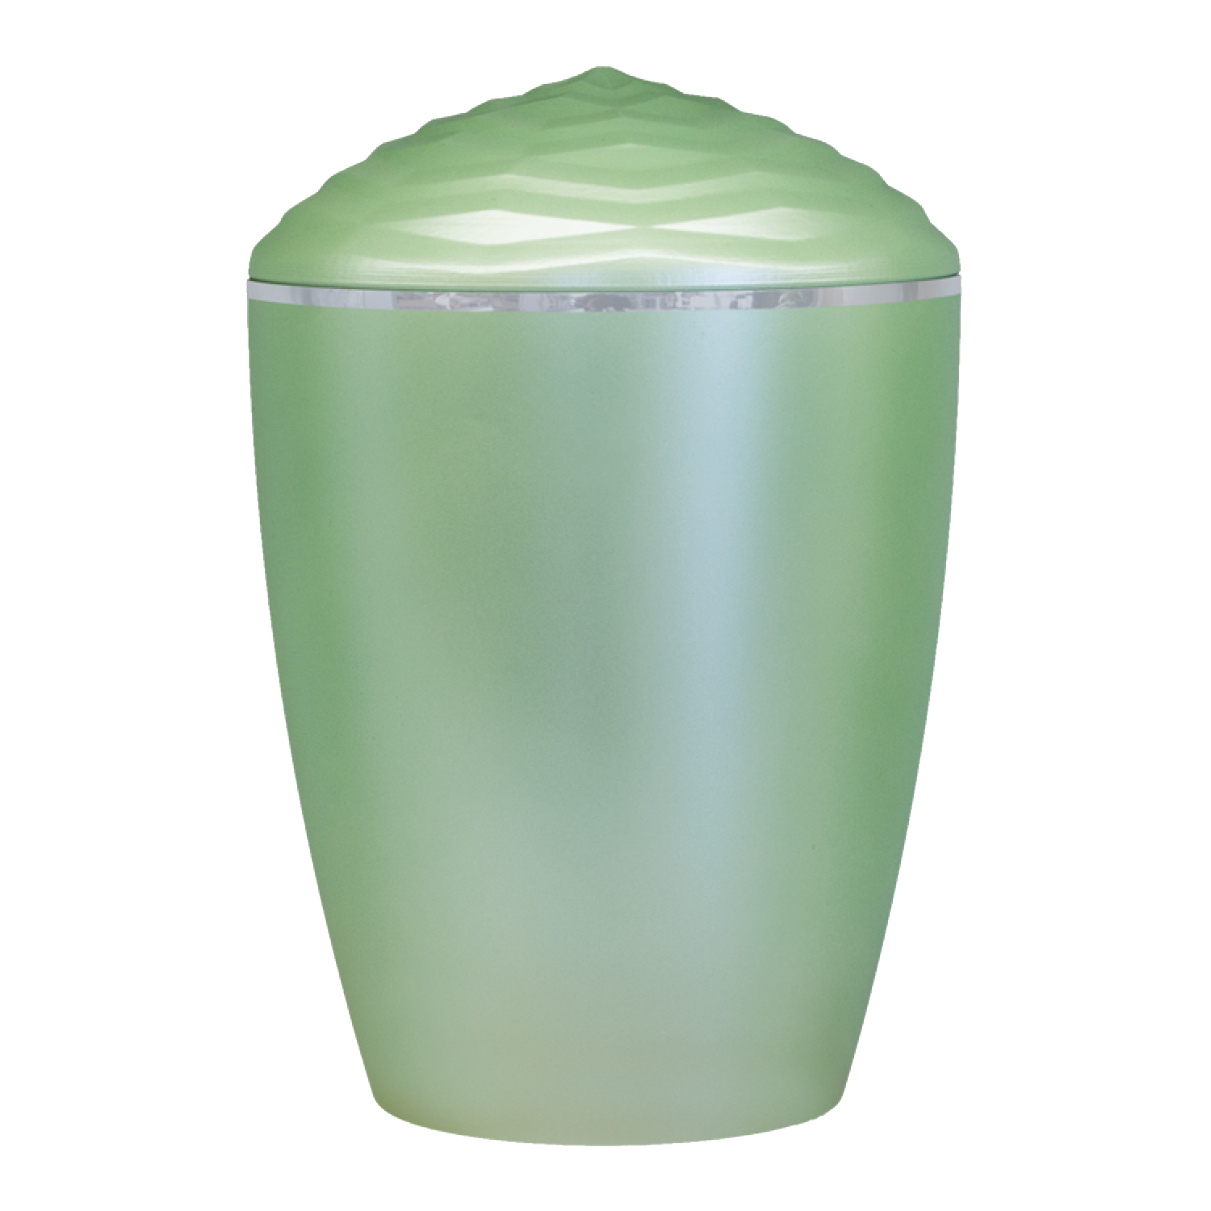 Forest Silver Band Bio Cremation Urn – Light Green